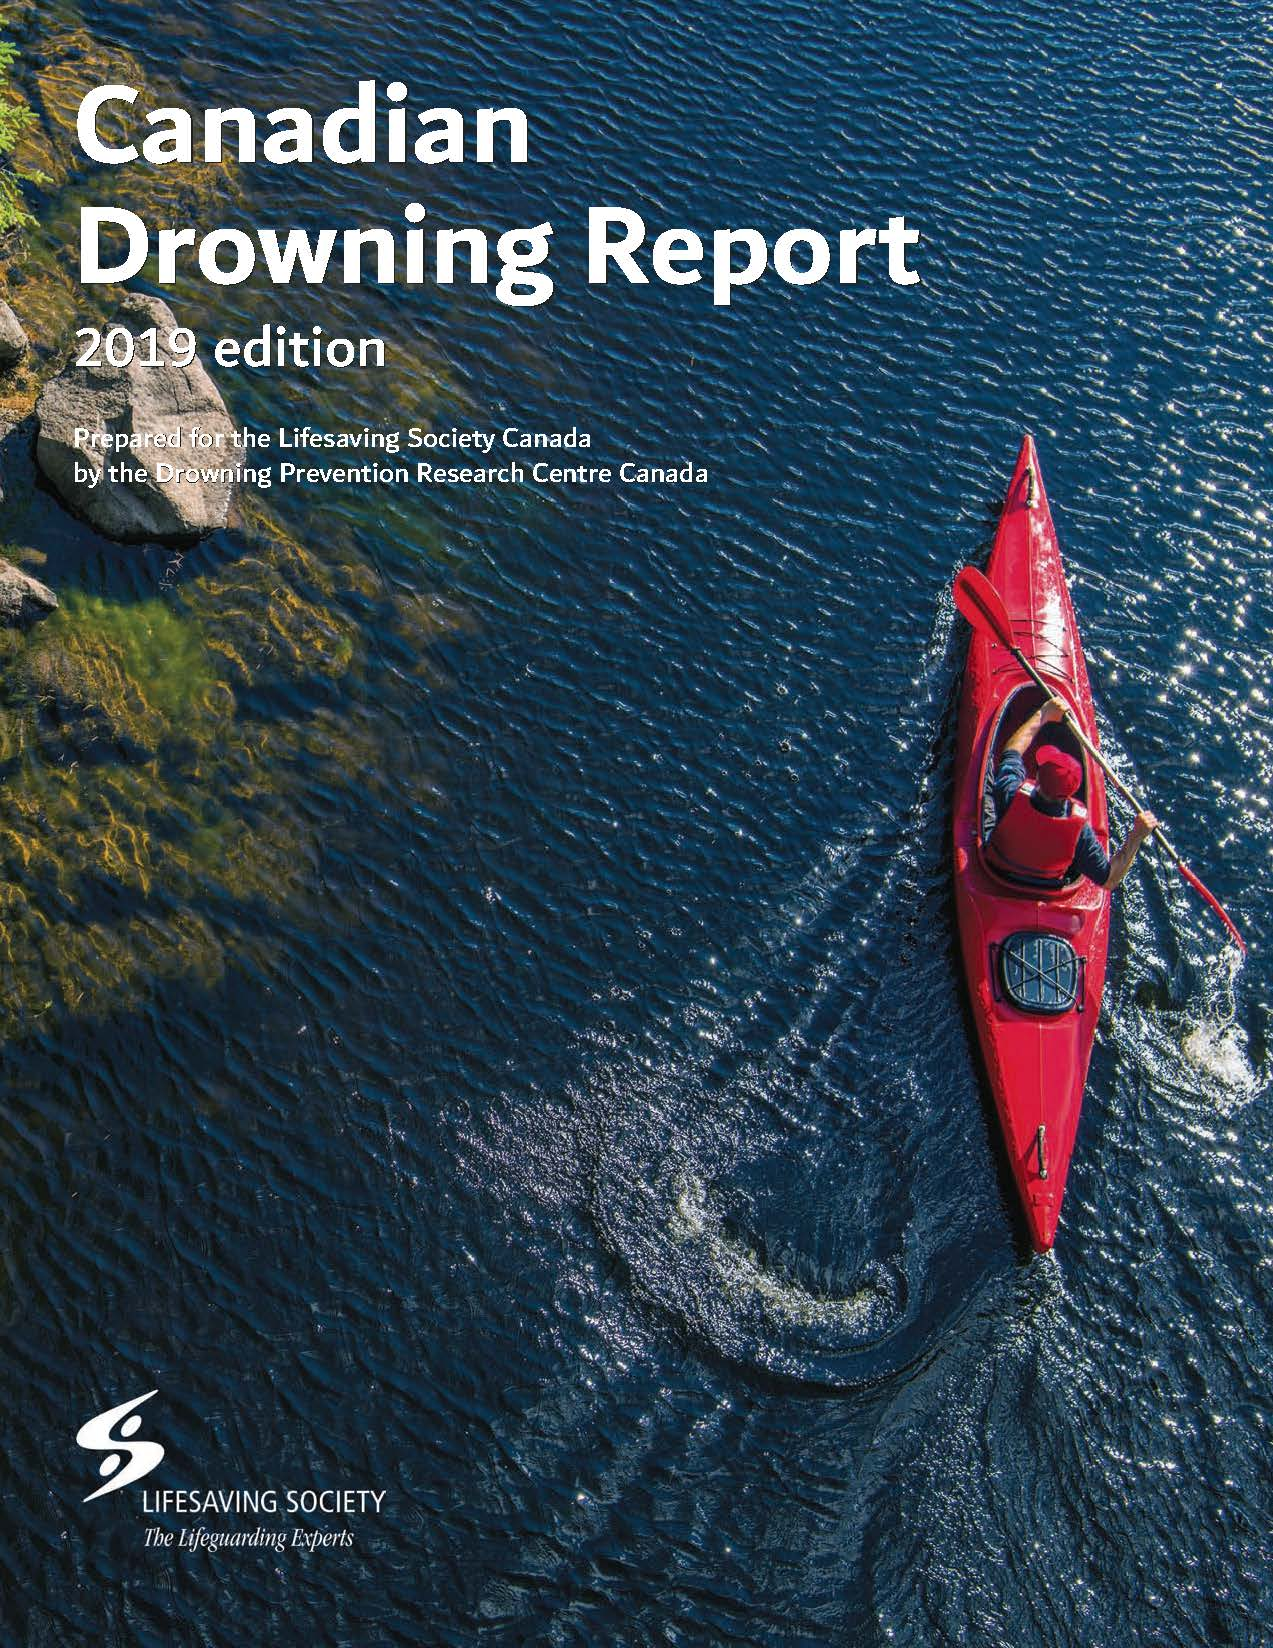 Canadian Drowning Report 2019 cover art